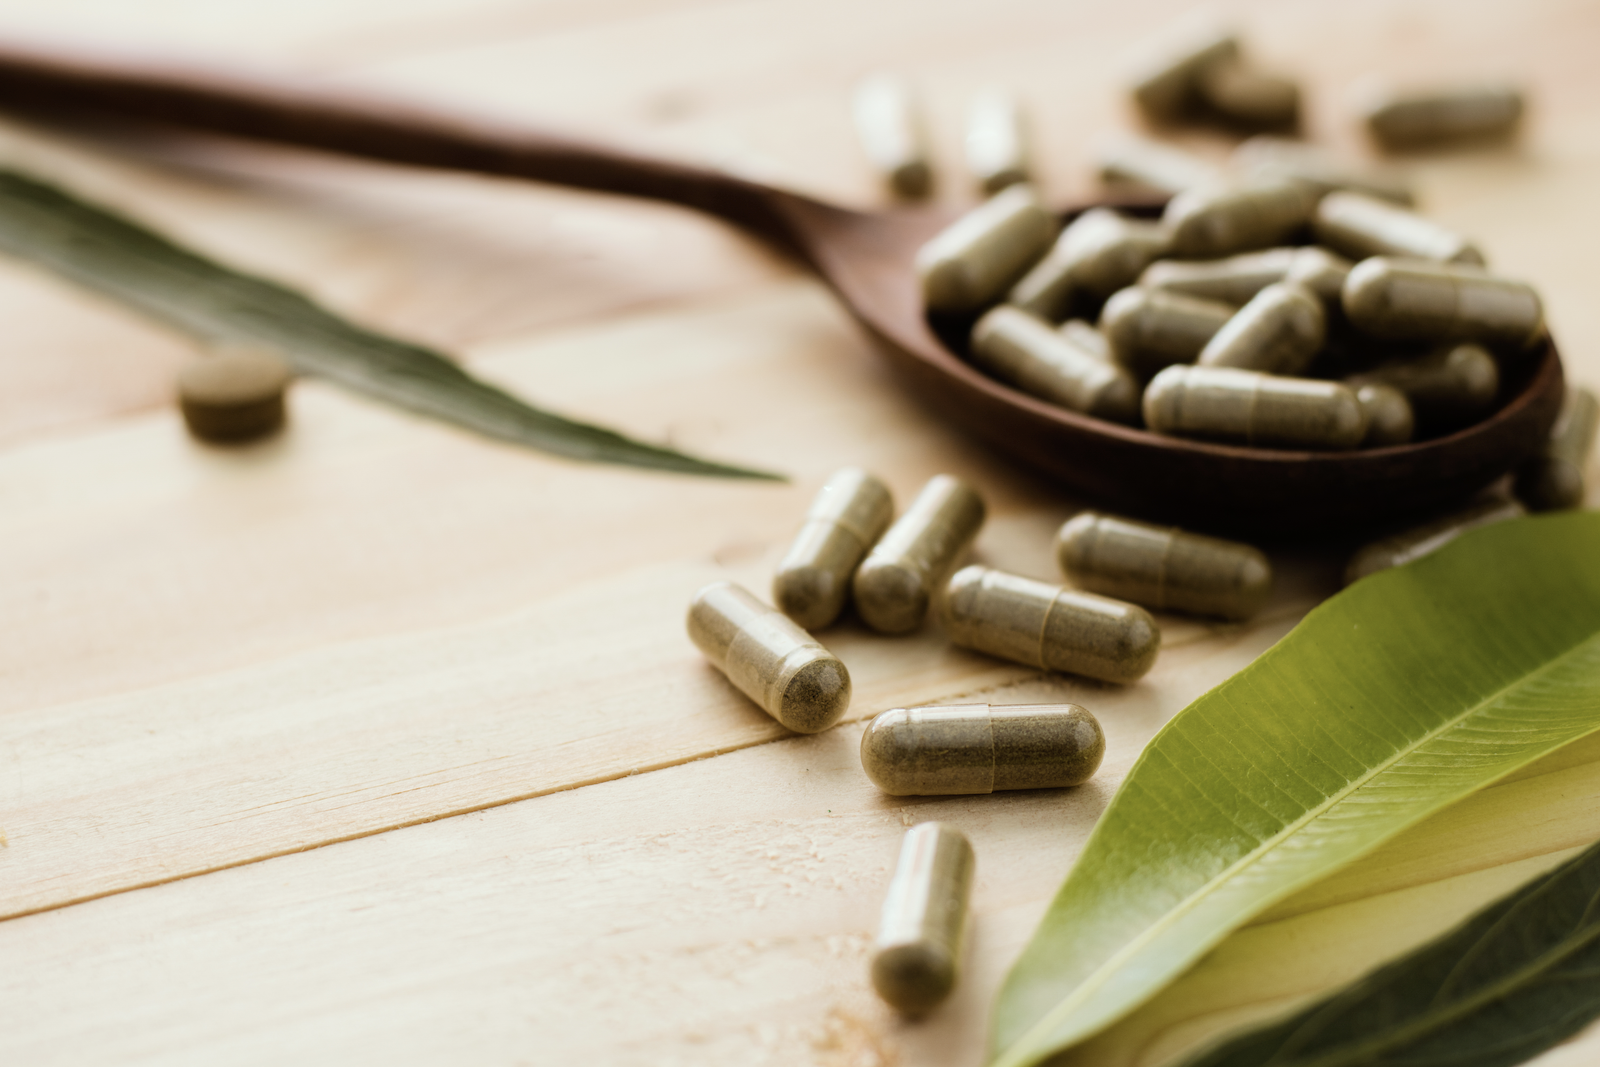 Antimicrobials: Herbal medicine on a wooden surface